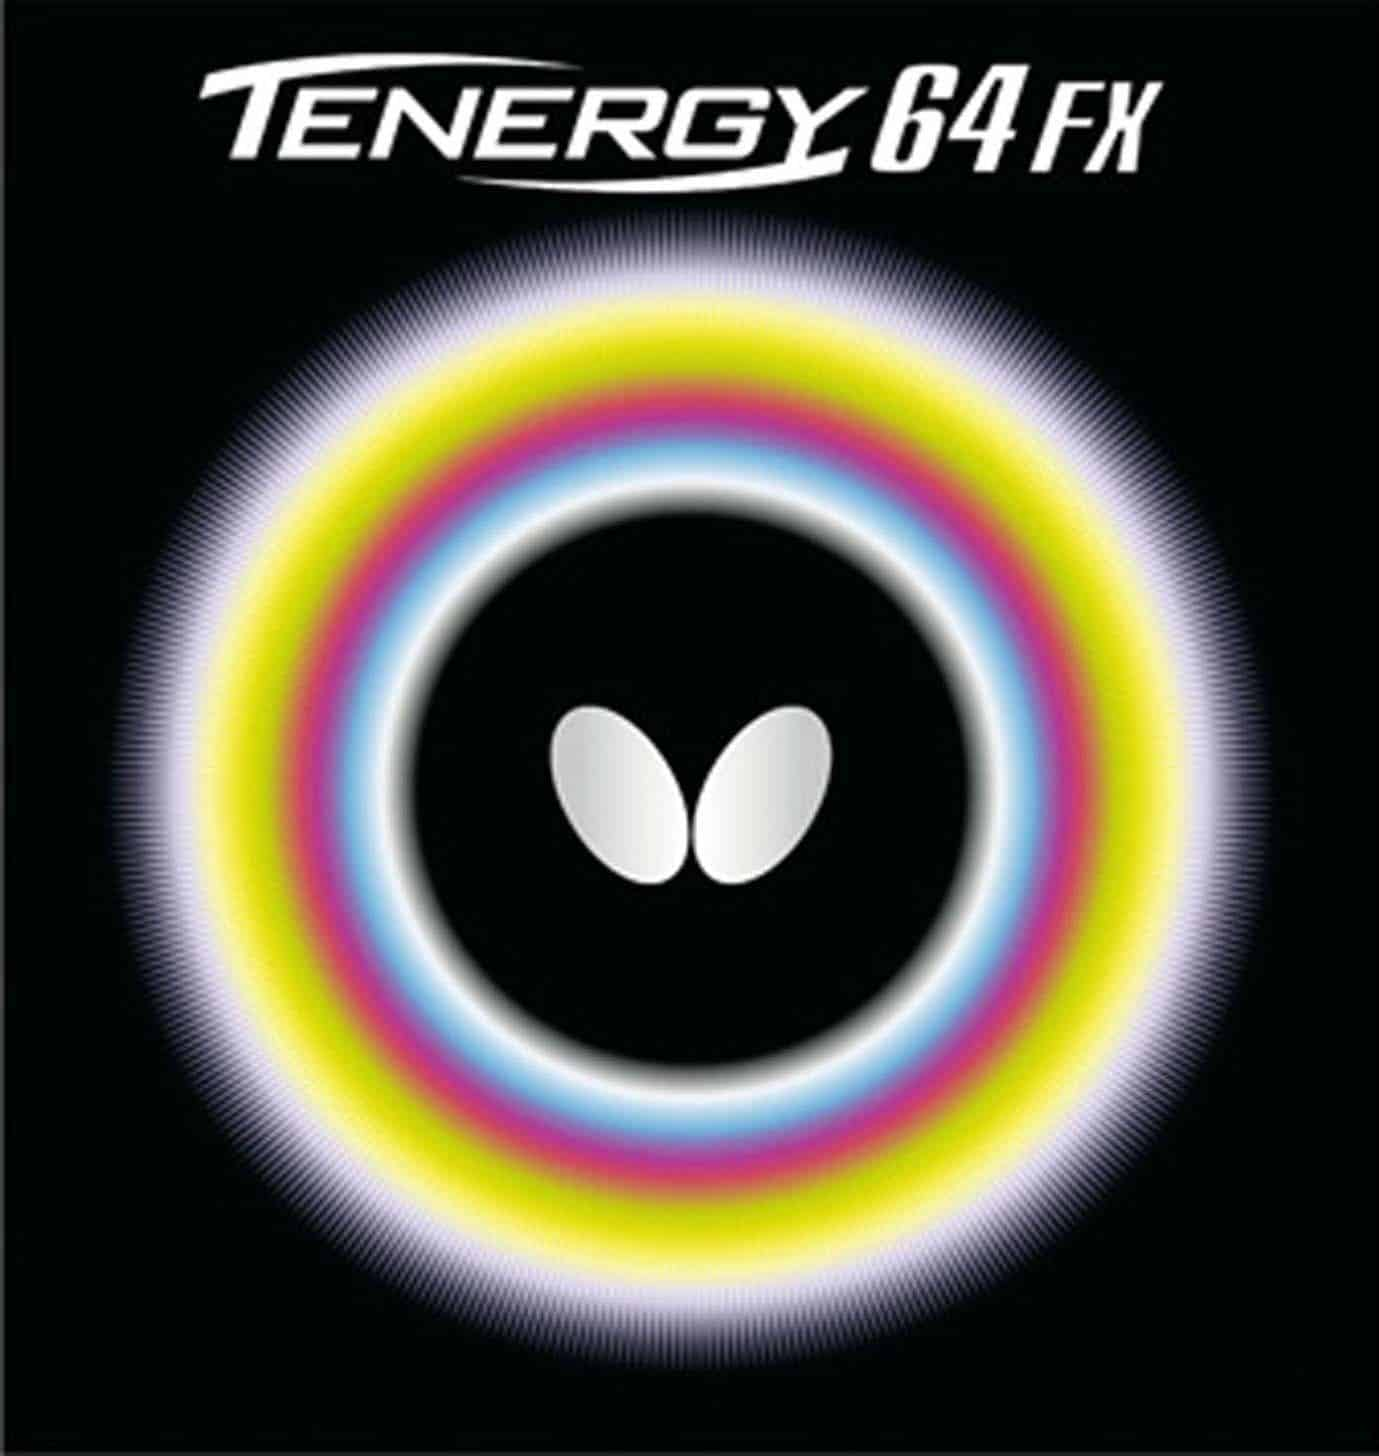 Best Ping Pong Rubber for Backhand - Butterfly Tenergy 64